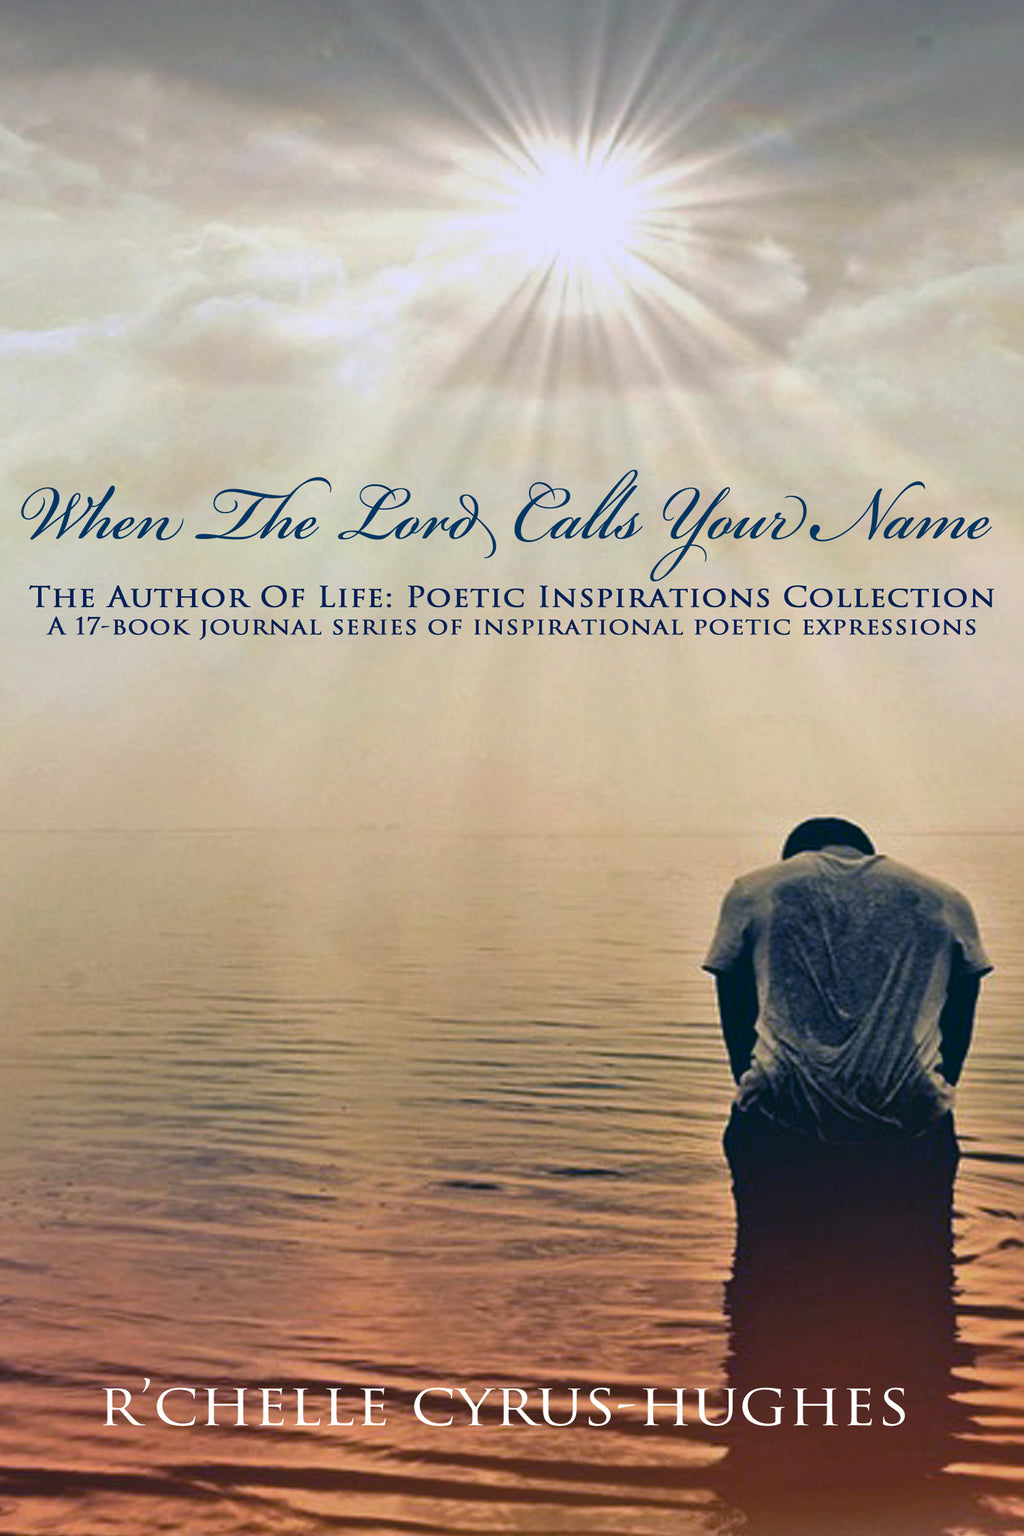 When The Lord Calls Your Name | Author Of Life: Poetic Inspirations Collection